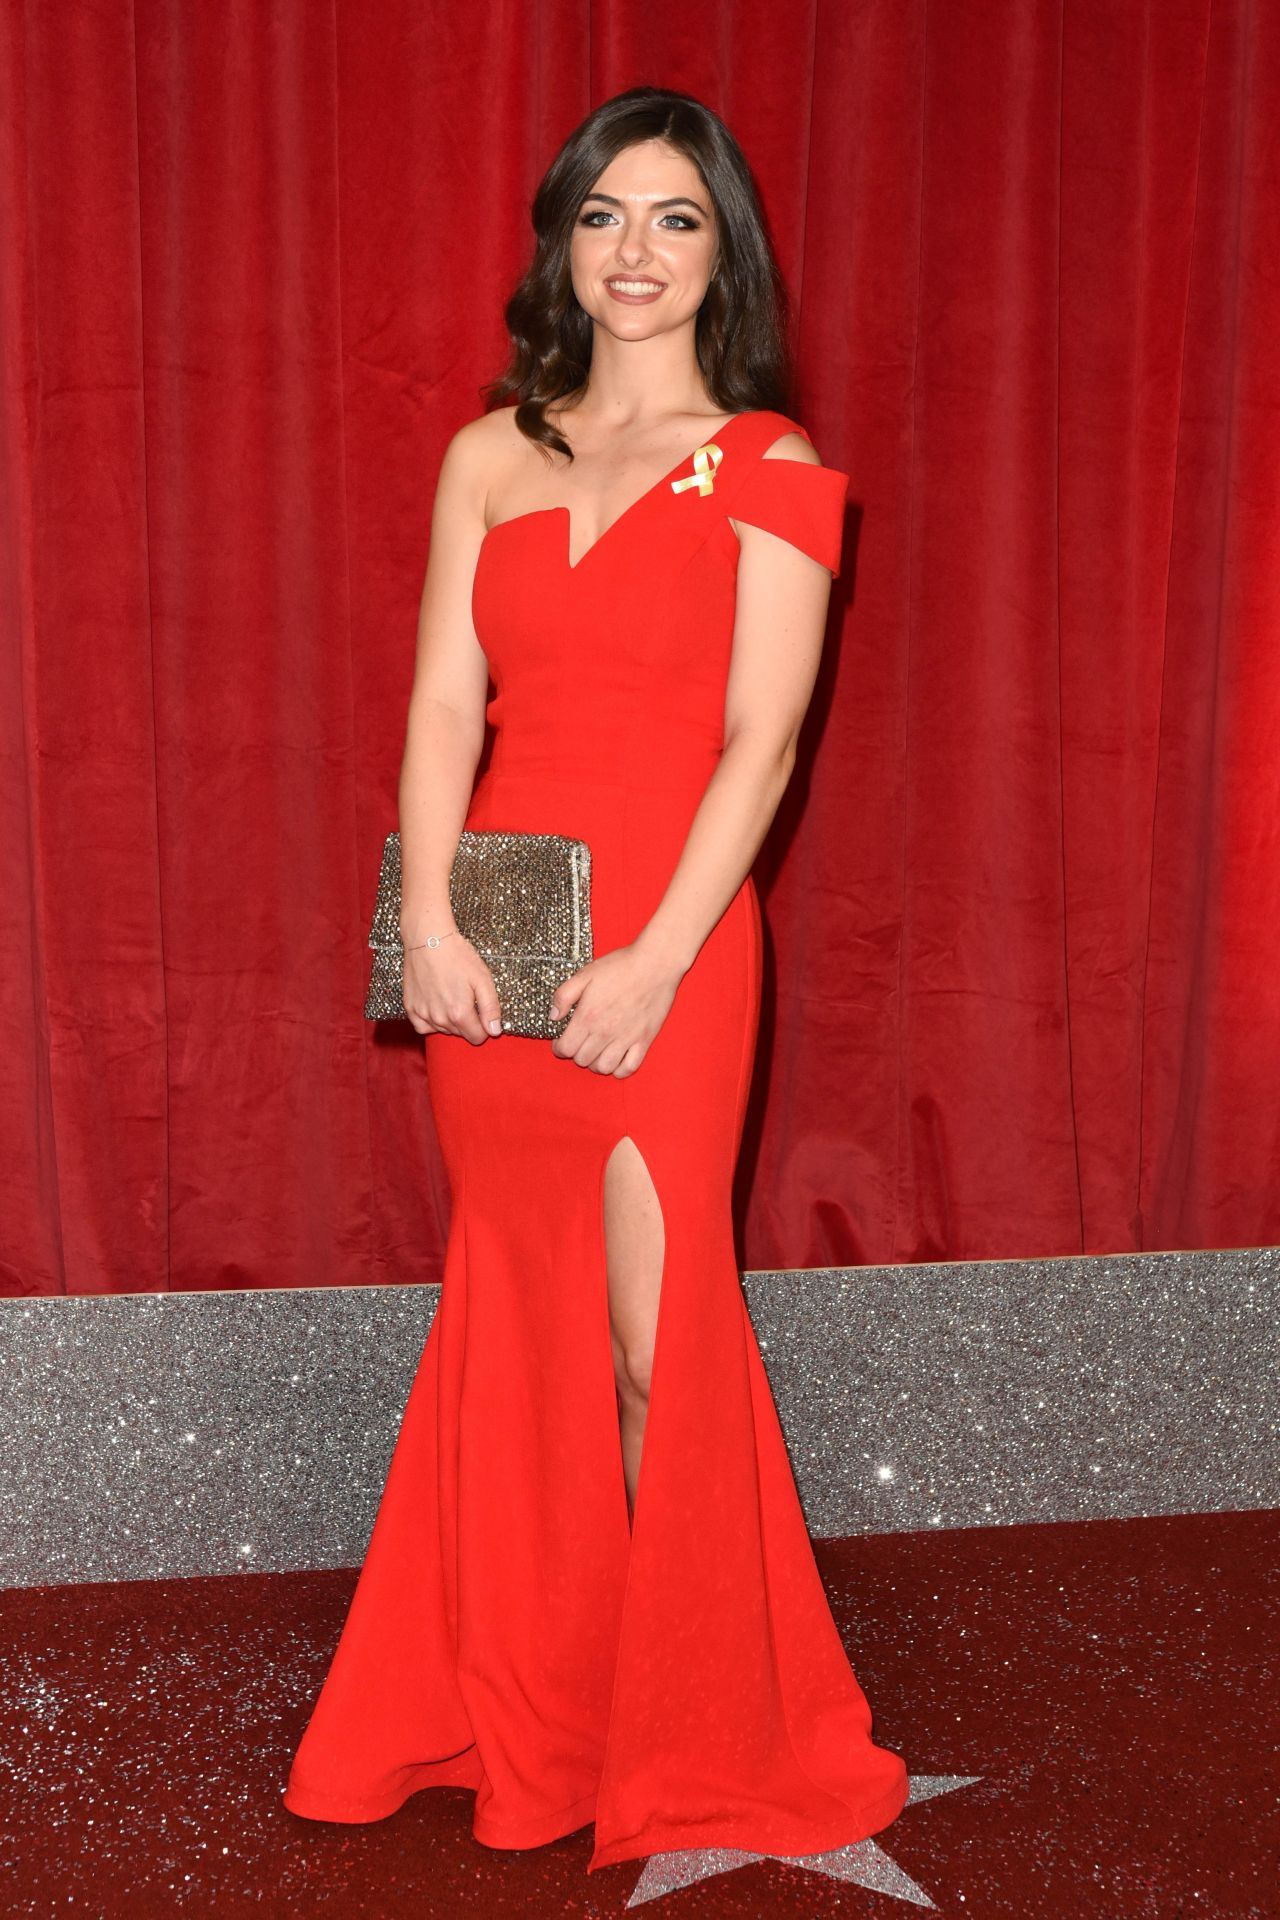 British Soap Awards In Manchester, UK 06